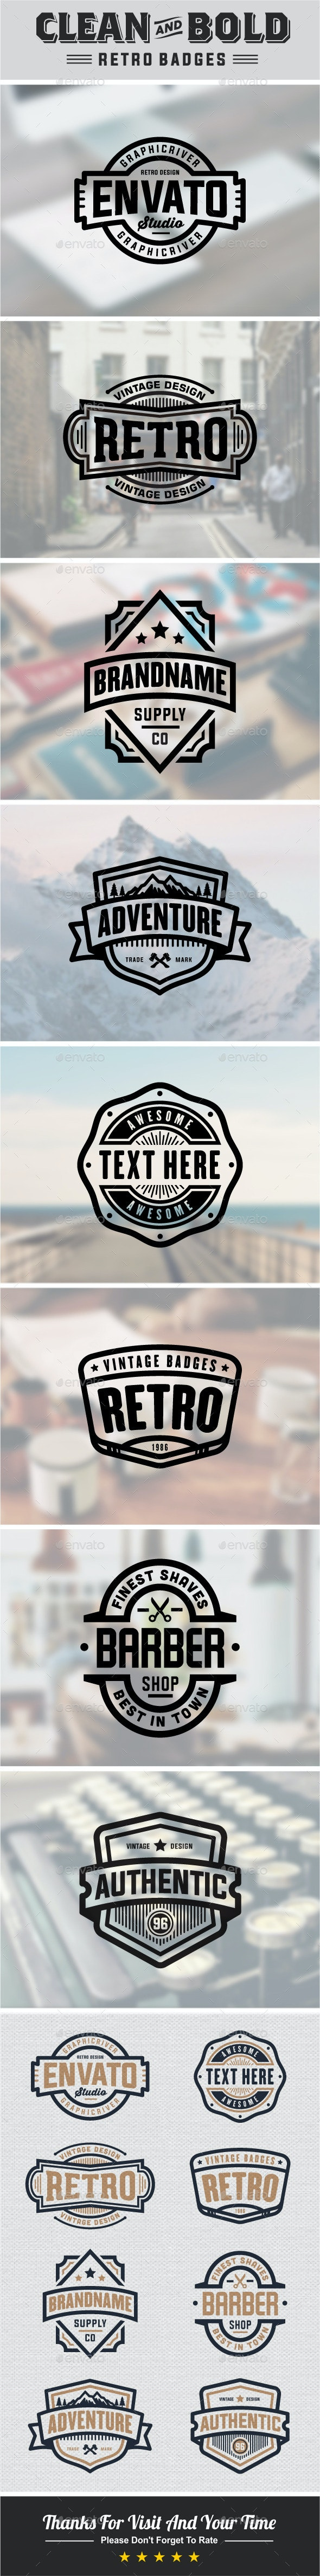 Clean And Bold Retro Badges - Badges & Stickers Web Elements